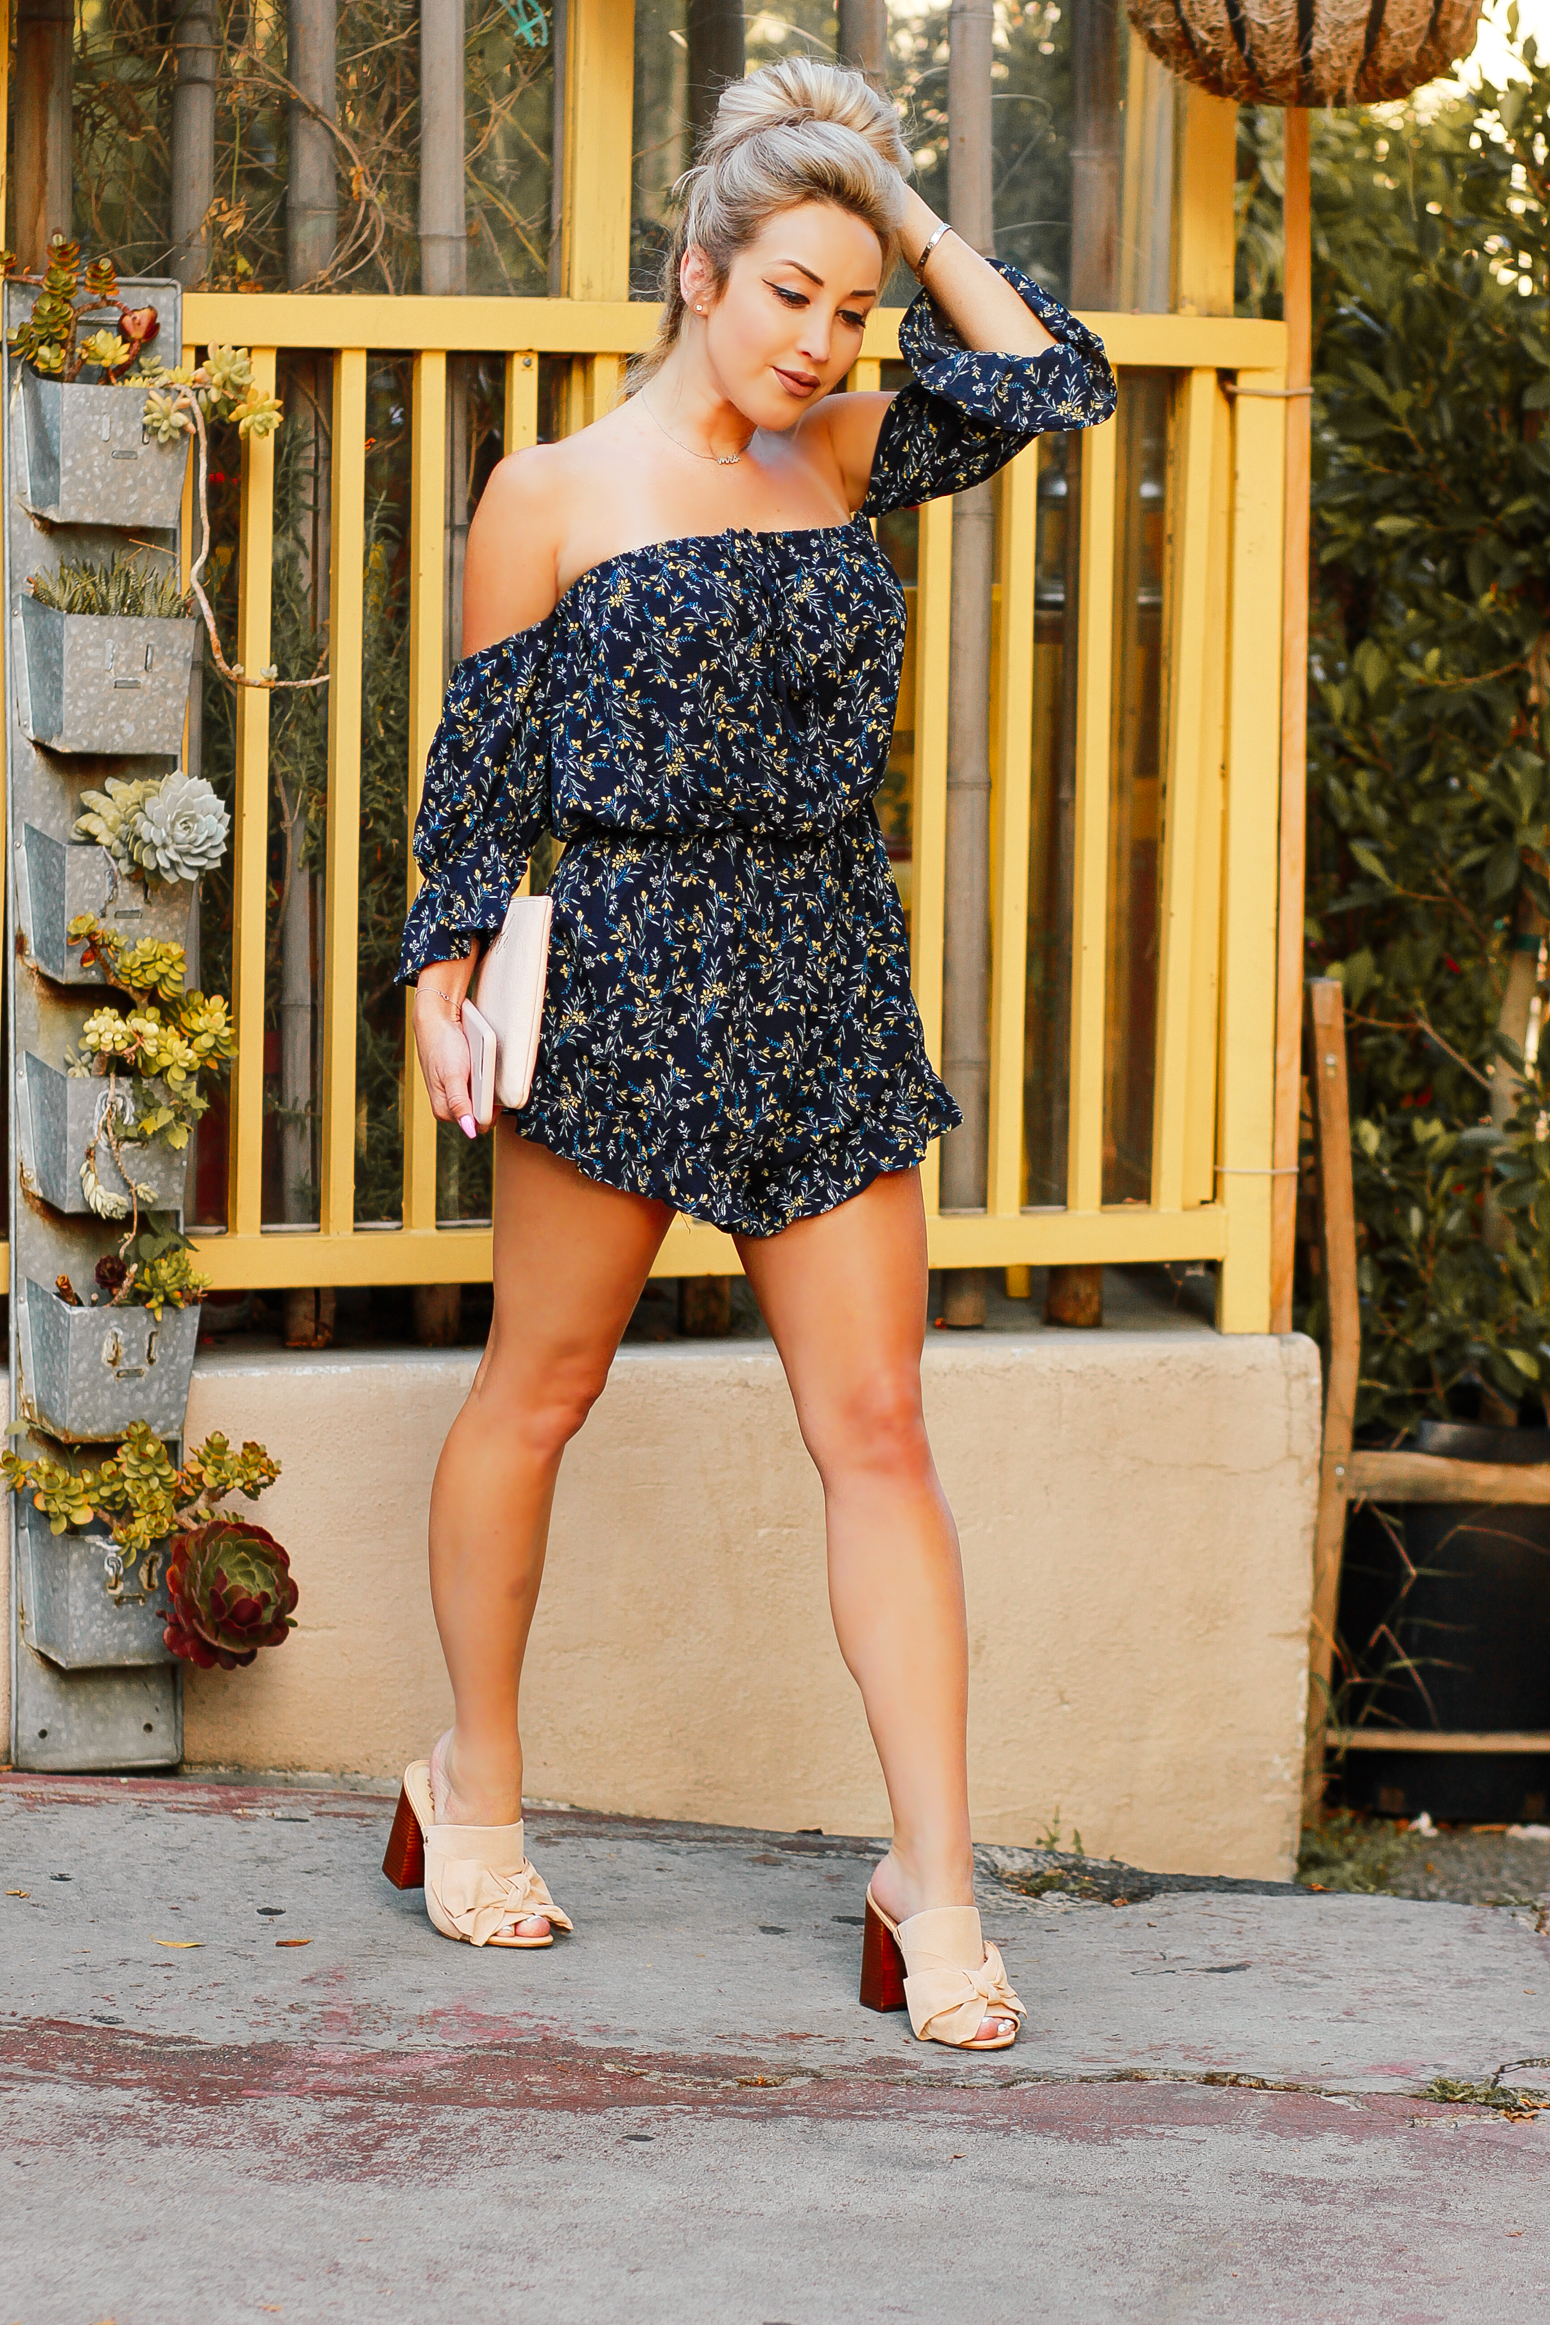 Blondie in the City | Navy Blue, Yellow Floral Romper | Summer Fashion | Cute Summer Outfit